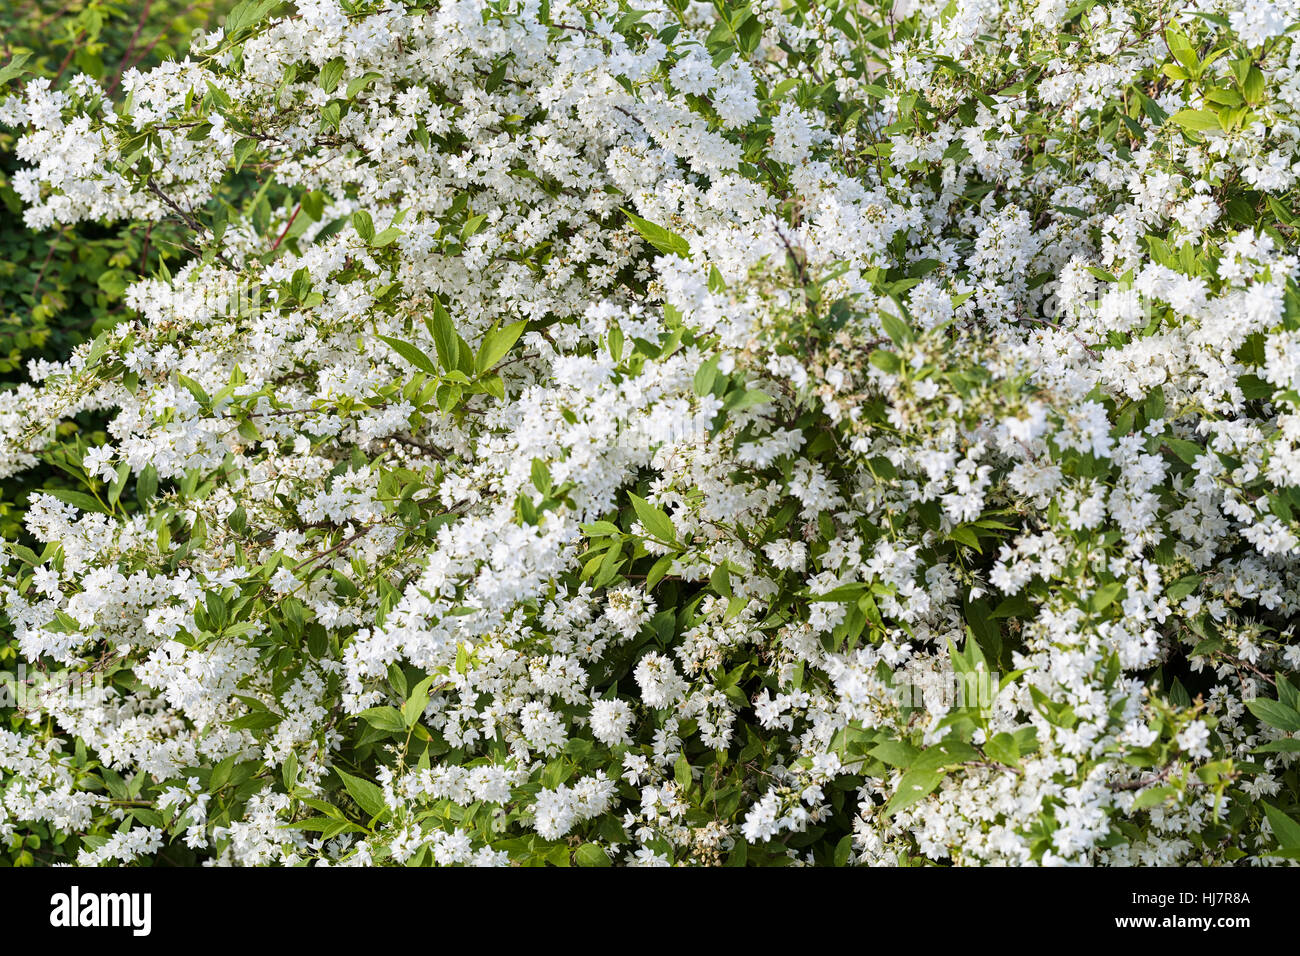 Bush With Small White Flowers On A Branches Note Shallow Depth Of